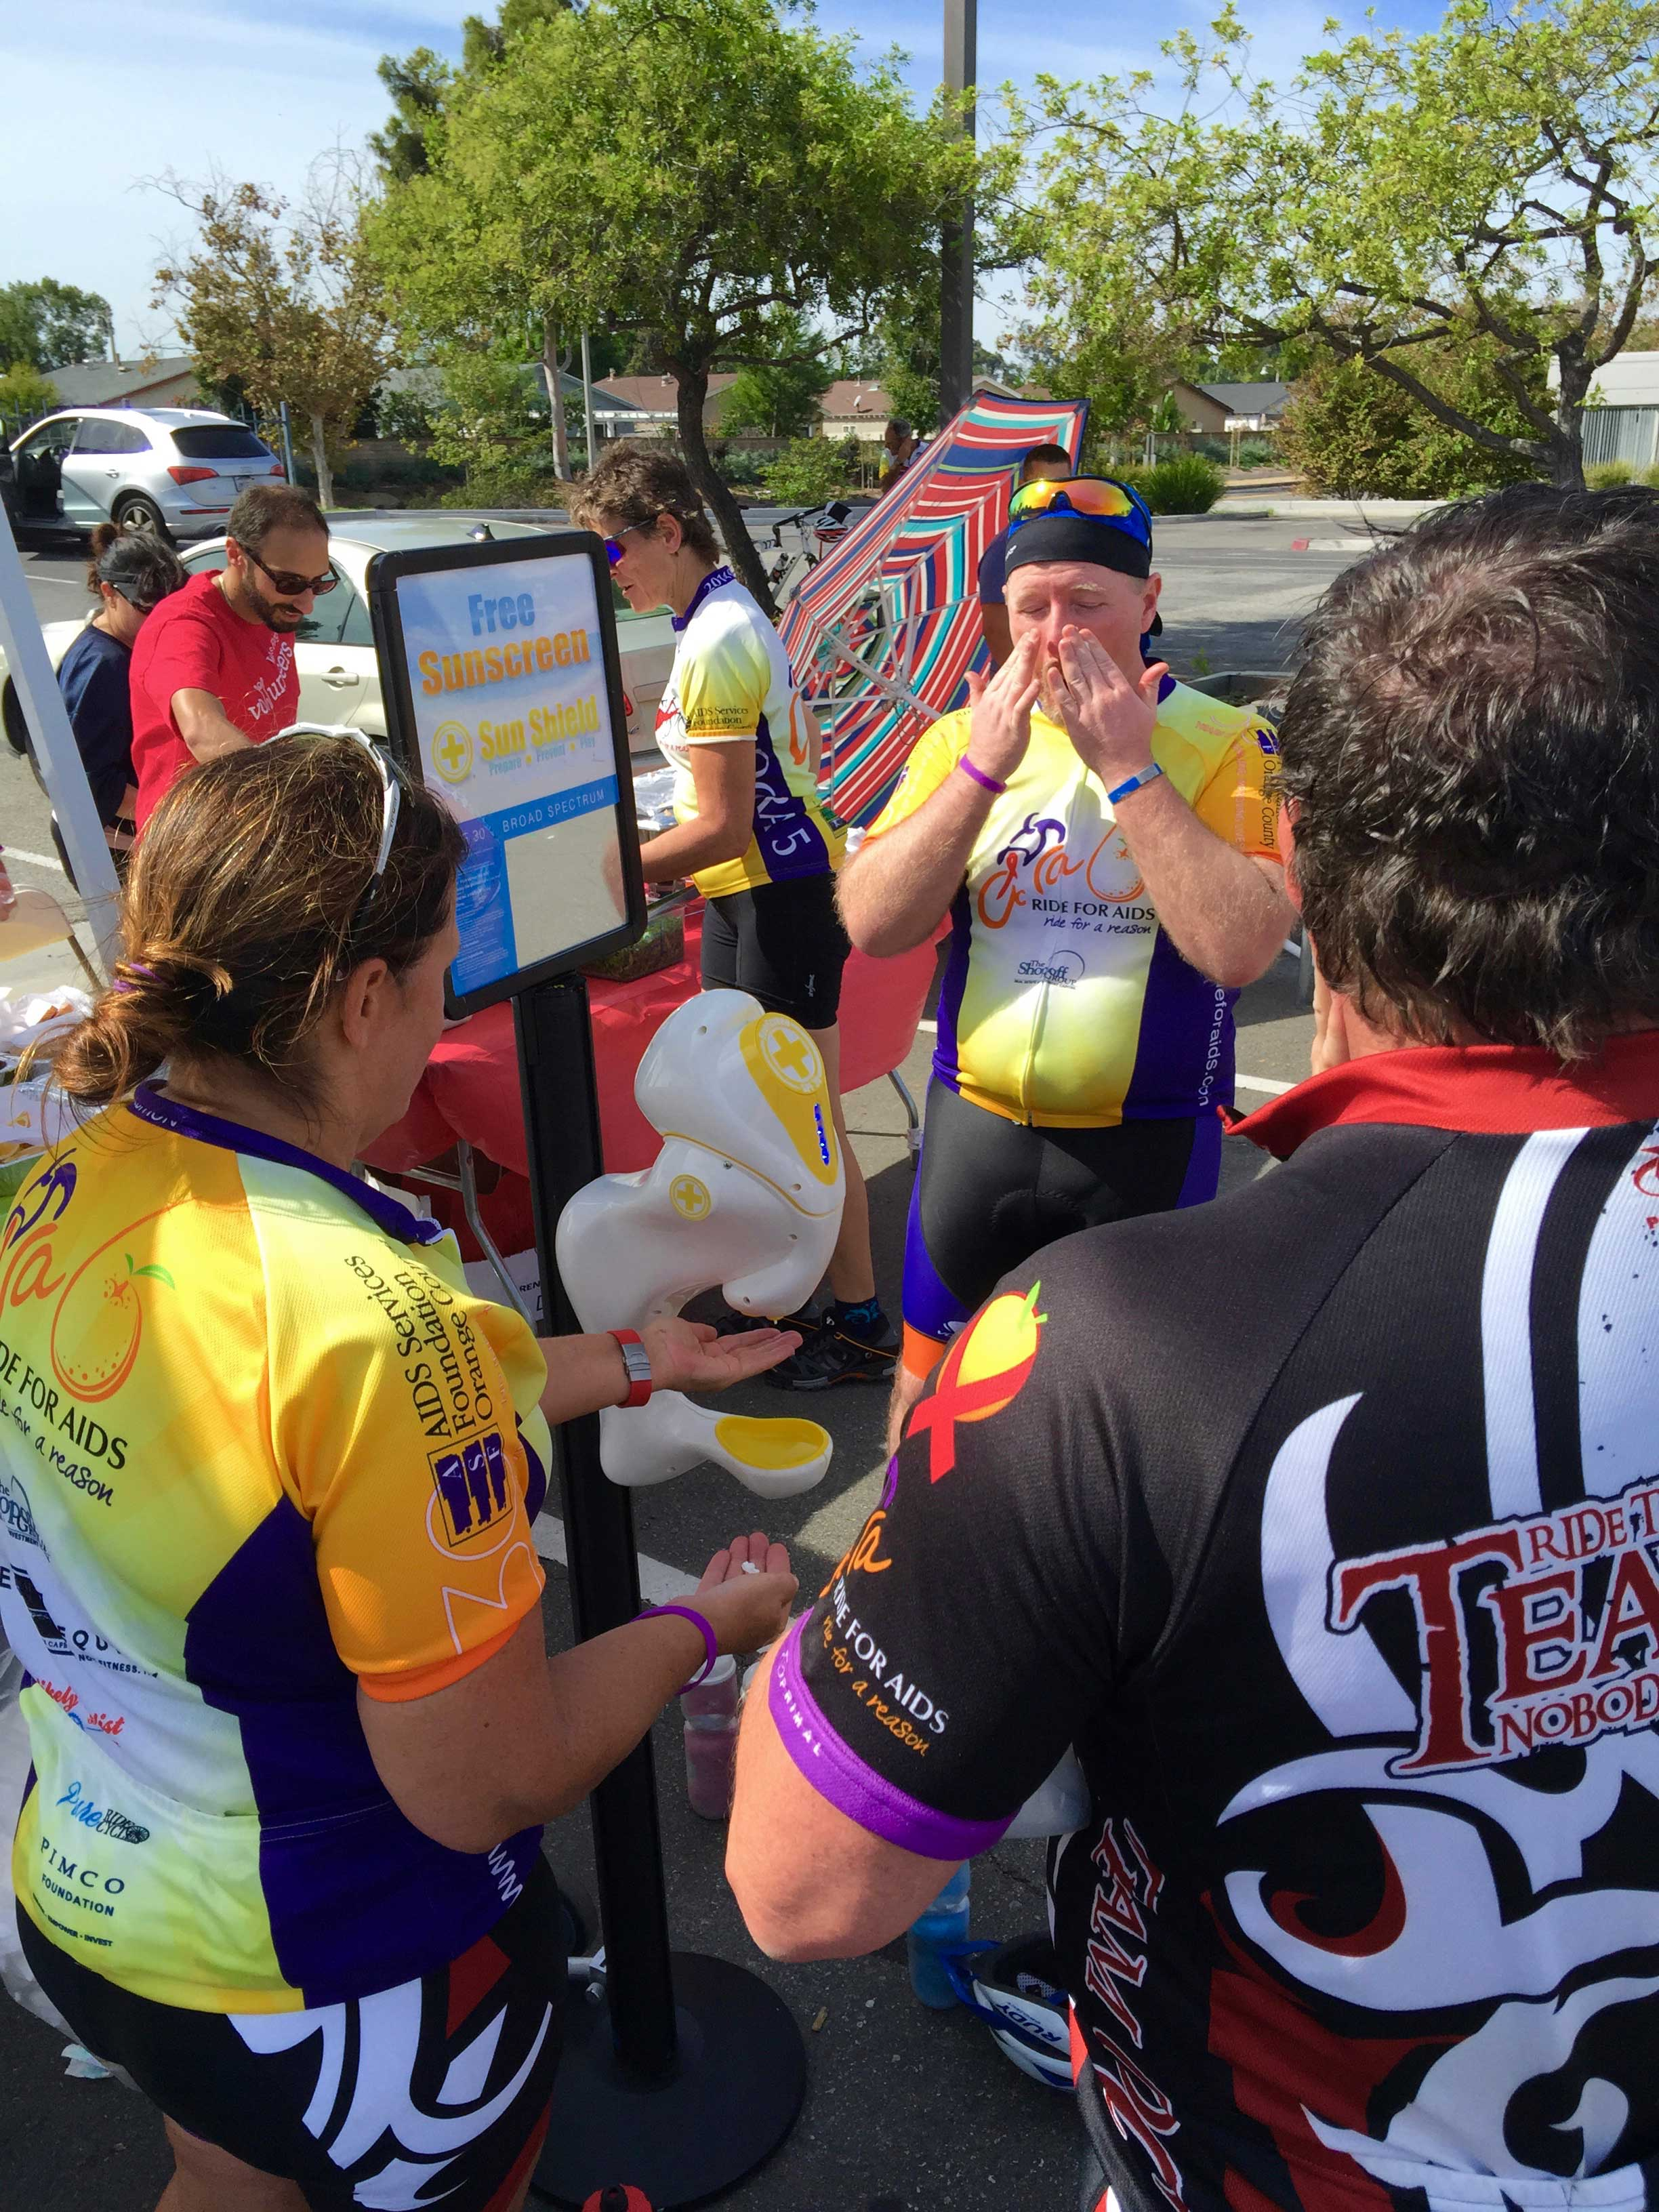 Orange-County-Ride-For-Aids-Los-Angeles-Sunscreen-skin-cancer-melanoma-dispenser-sun-shield-sunblock